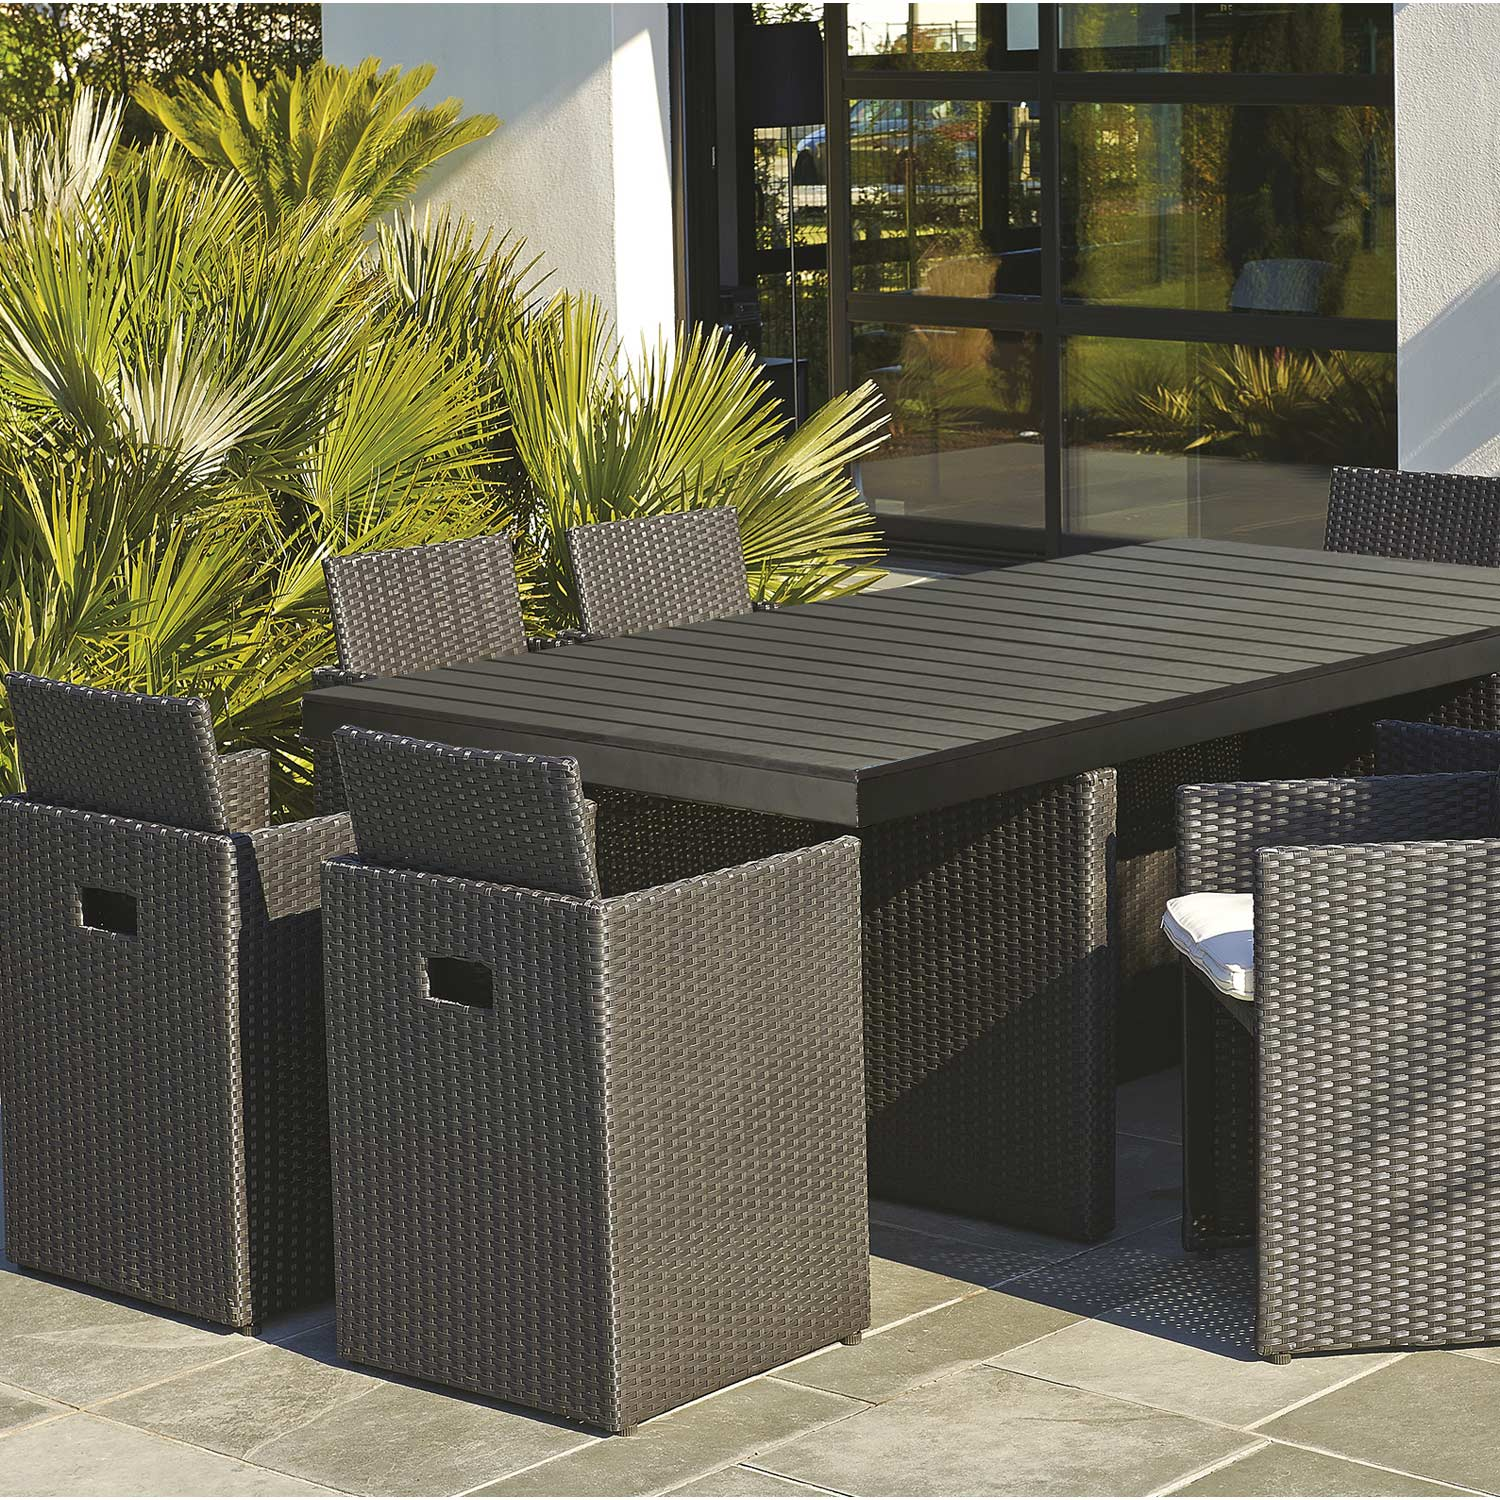 salon de jardin encastrable r sine tress e noir 1 table 8 fauteuils leroy merlin